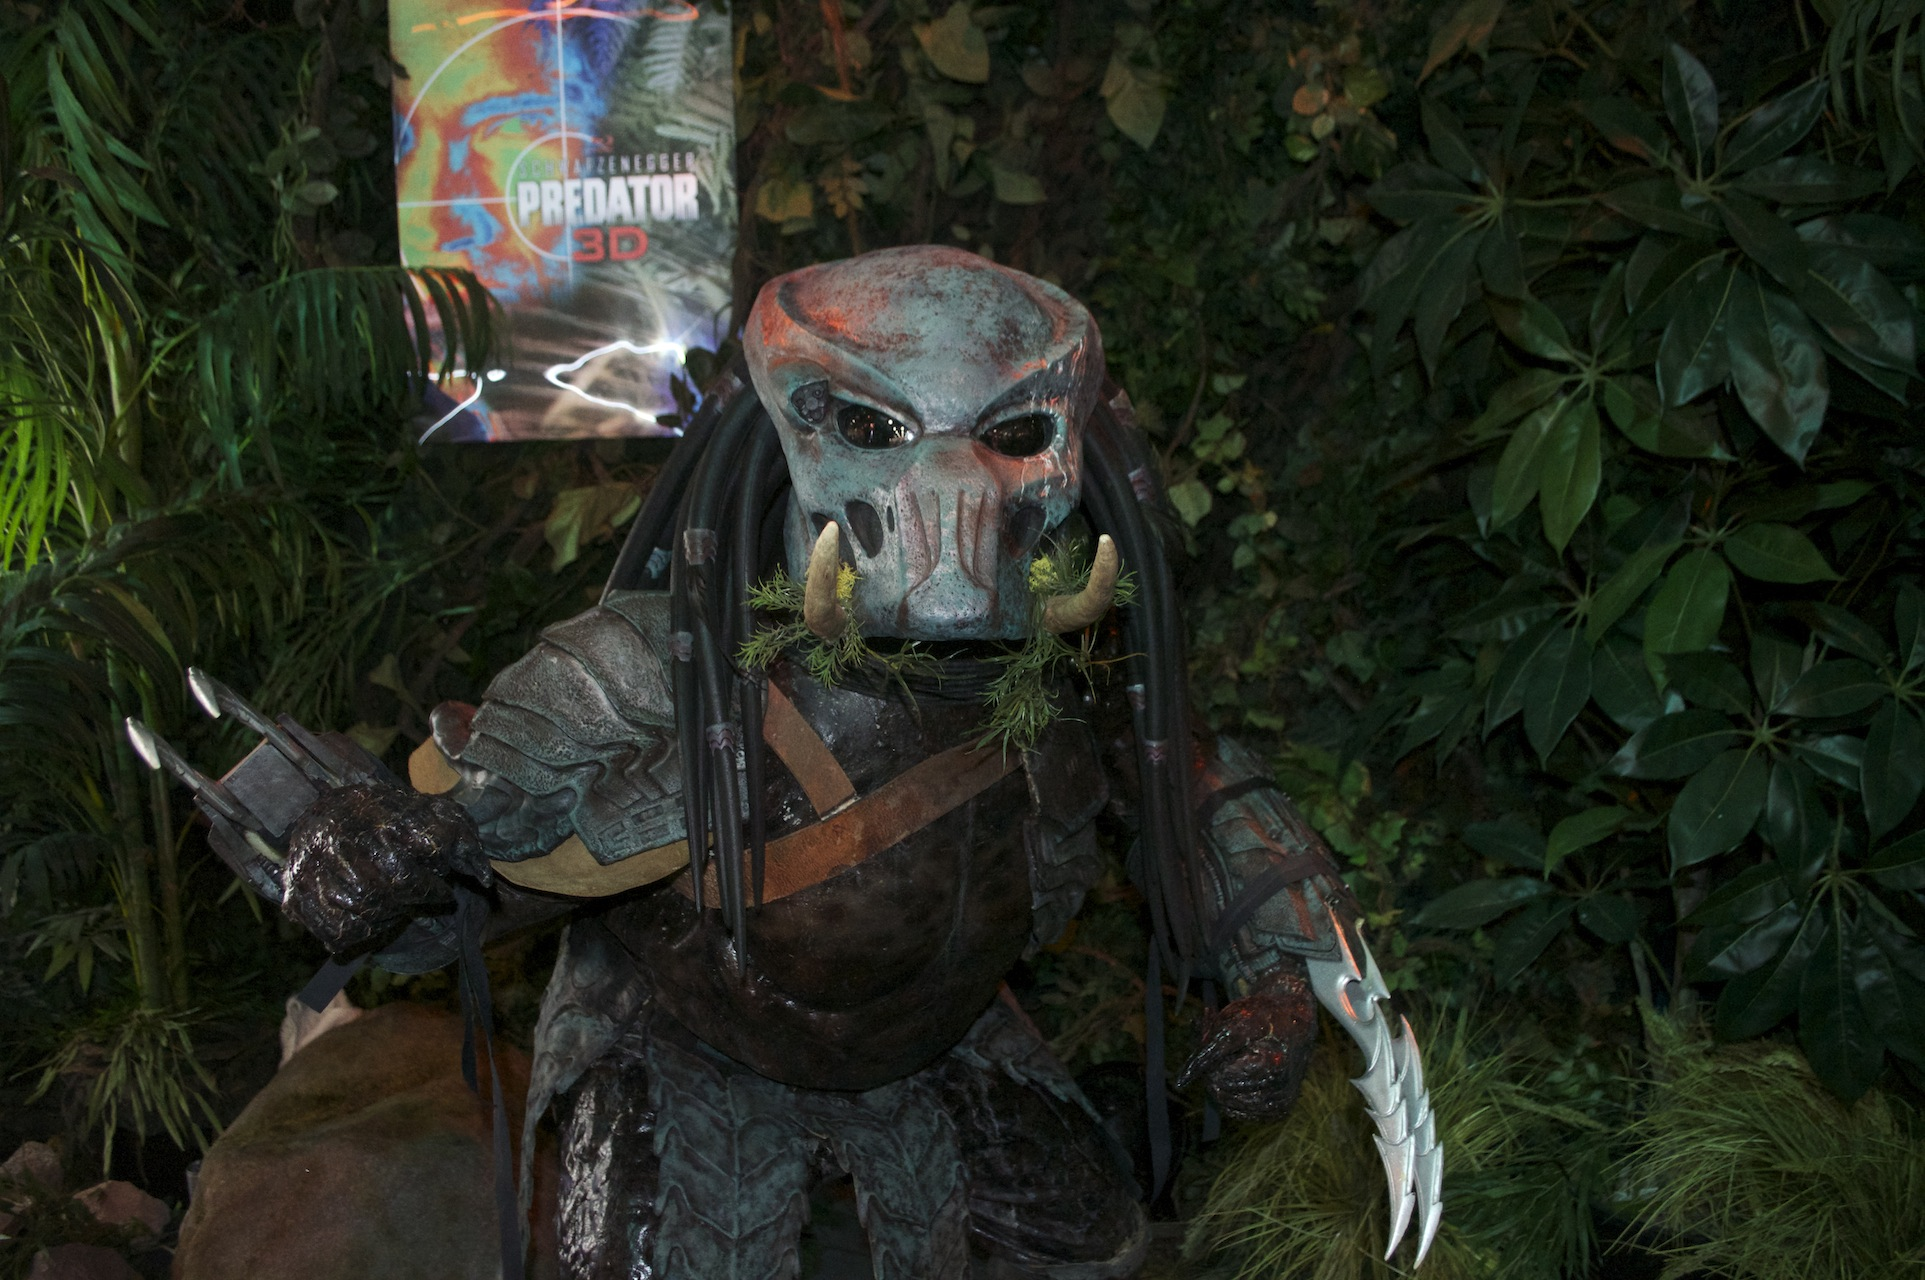 A Look at Predator 3D at the San Diego Comic-Con